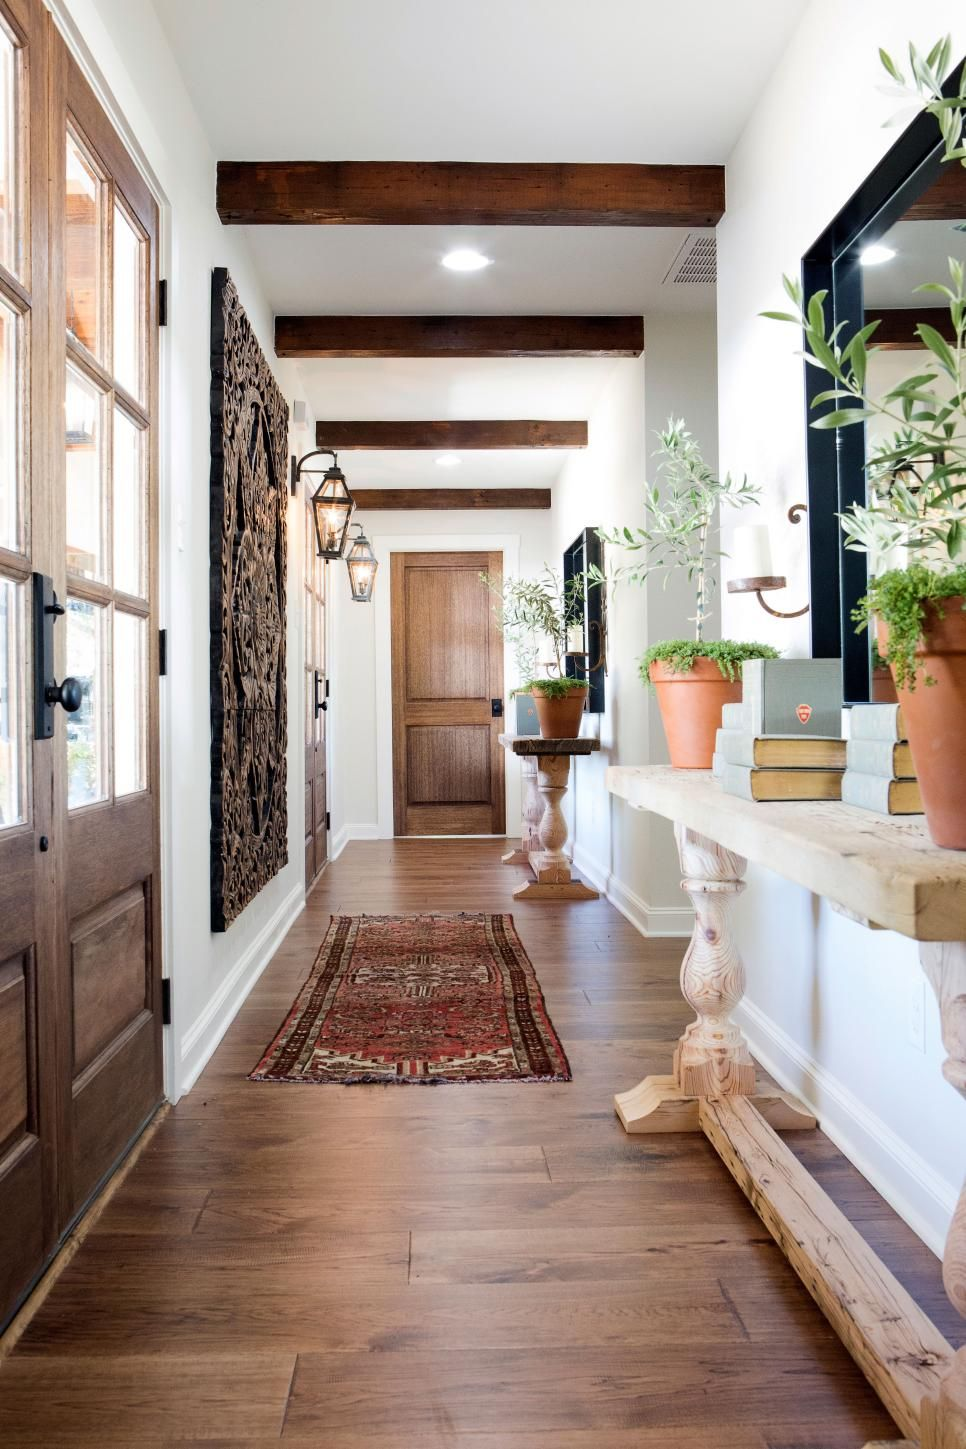 Joanna gaines hallway ideas  In one of their biggest challenges yet in terms of redefining spaces